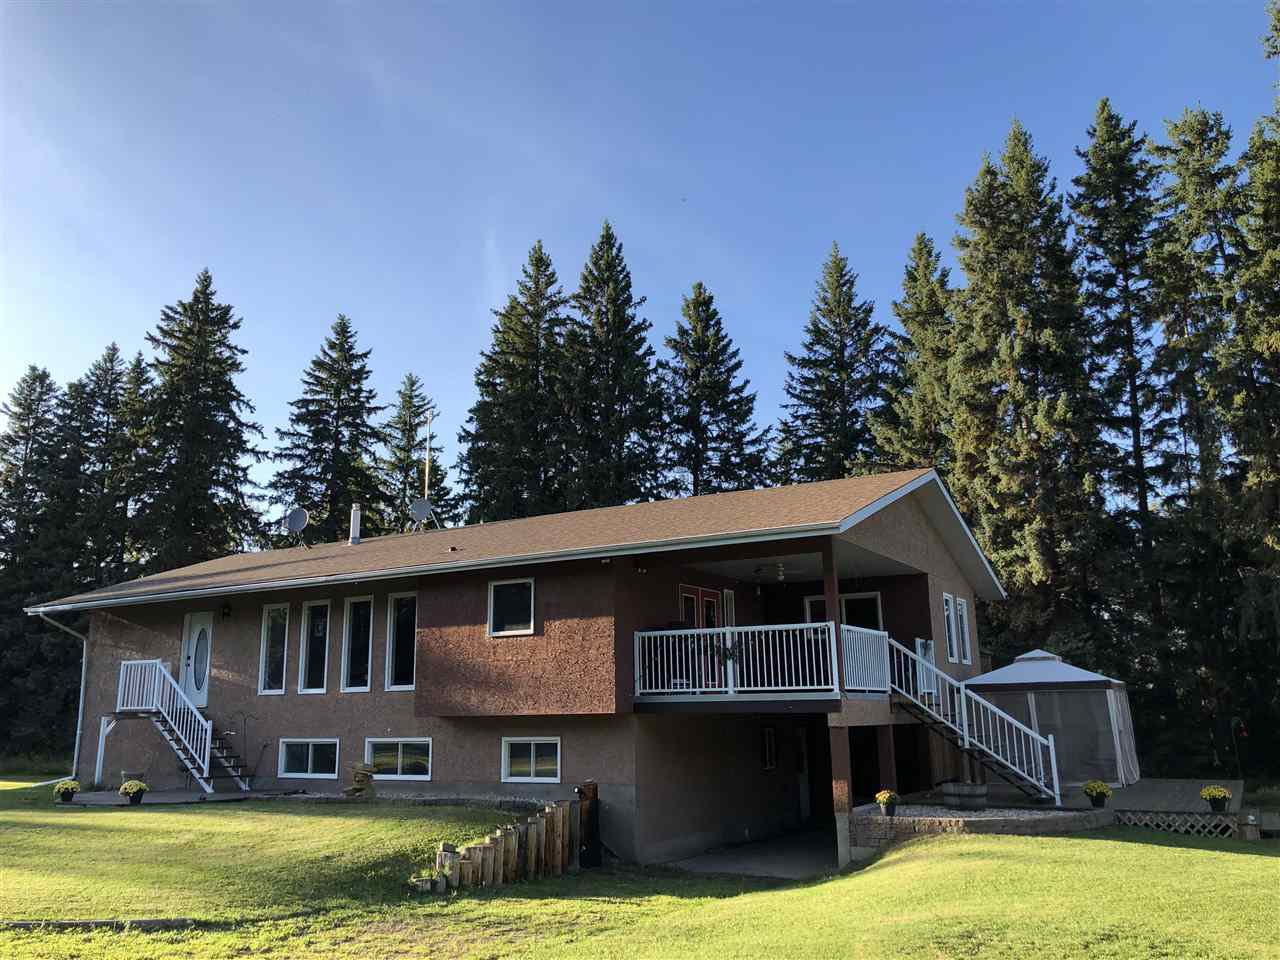 Main Photo: 232038 TWP RD 470: Rural Wetaskiwin County House for sale : MLS®# E4173795